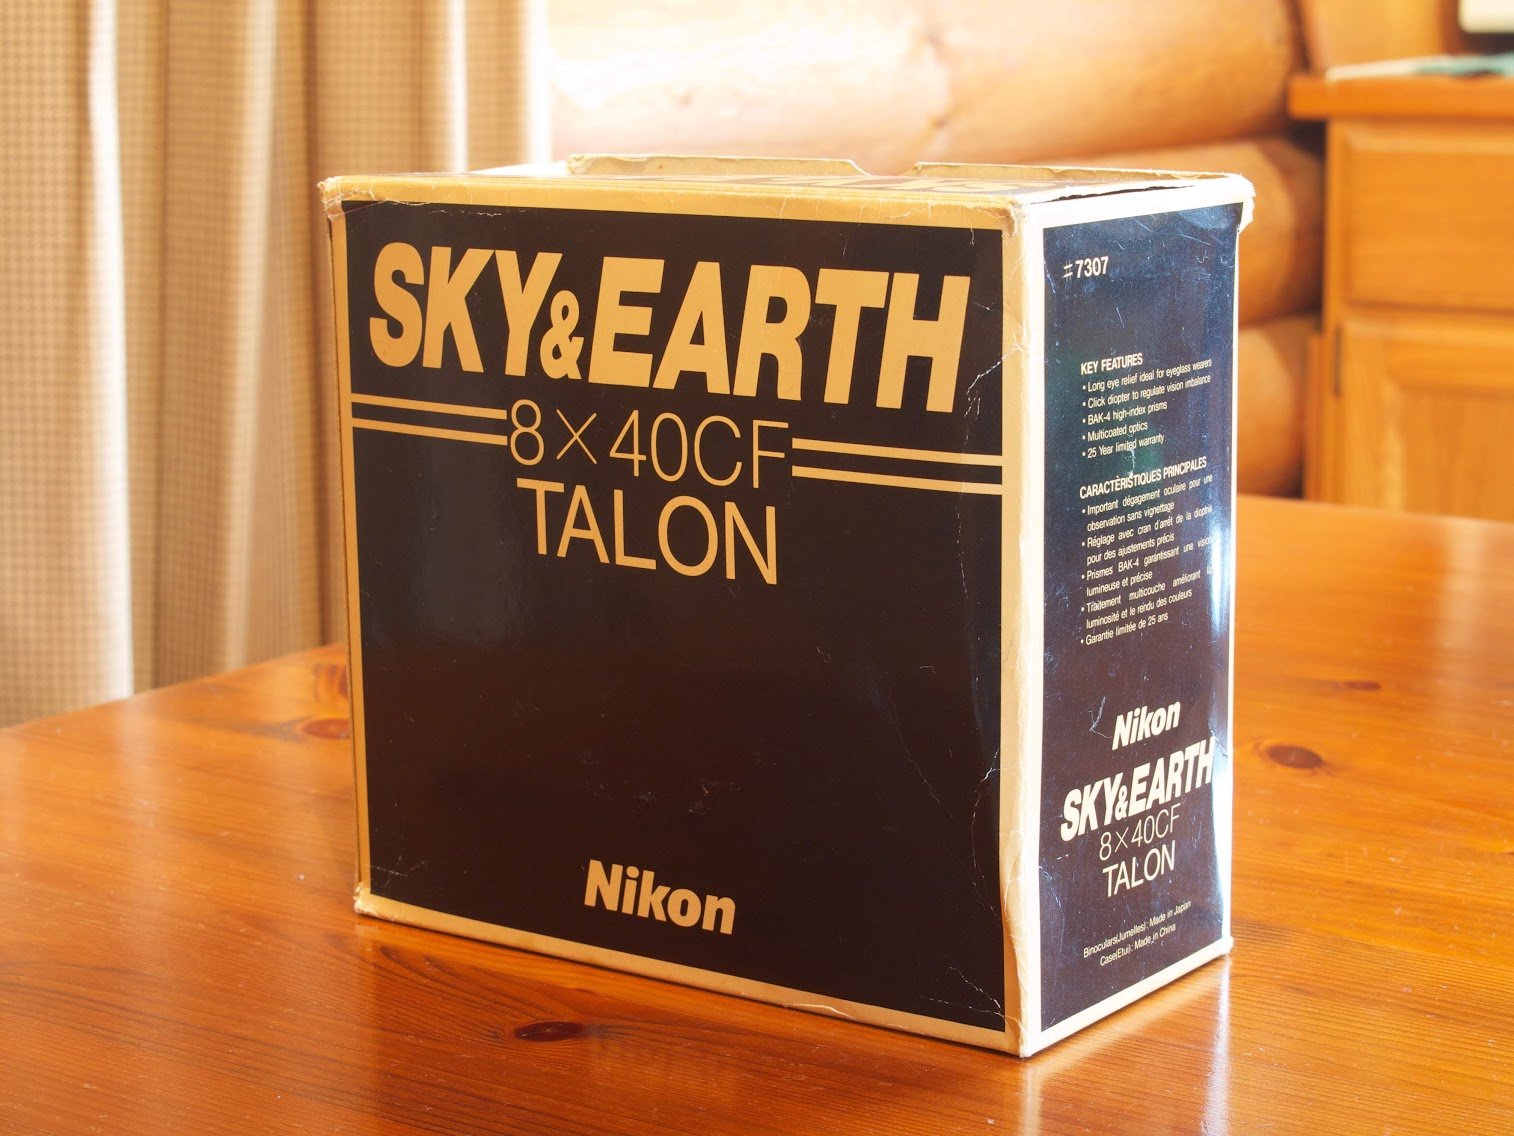 Nikon Sky & Earth 8x40 CF Talon Box